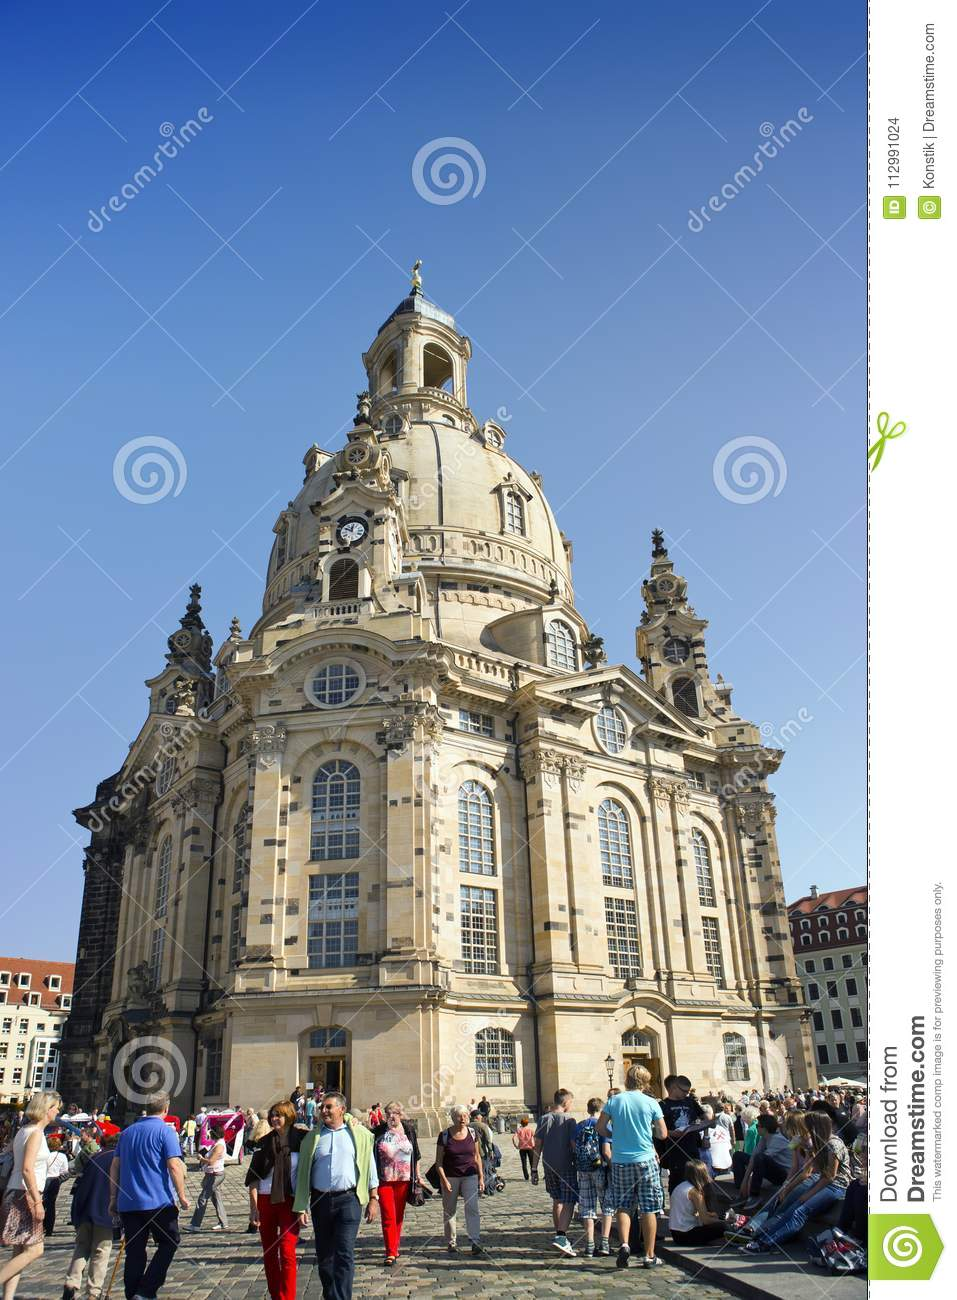 DRESDEN, GERMANY - SEPTEMBER 17: People walk on Neumarkt Square at Frauenkirche Our Lady church in the center of Old town